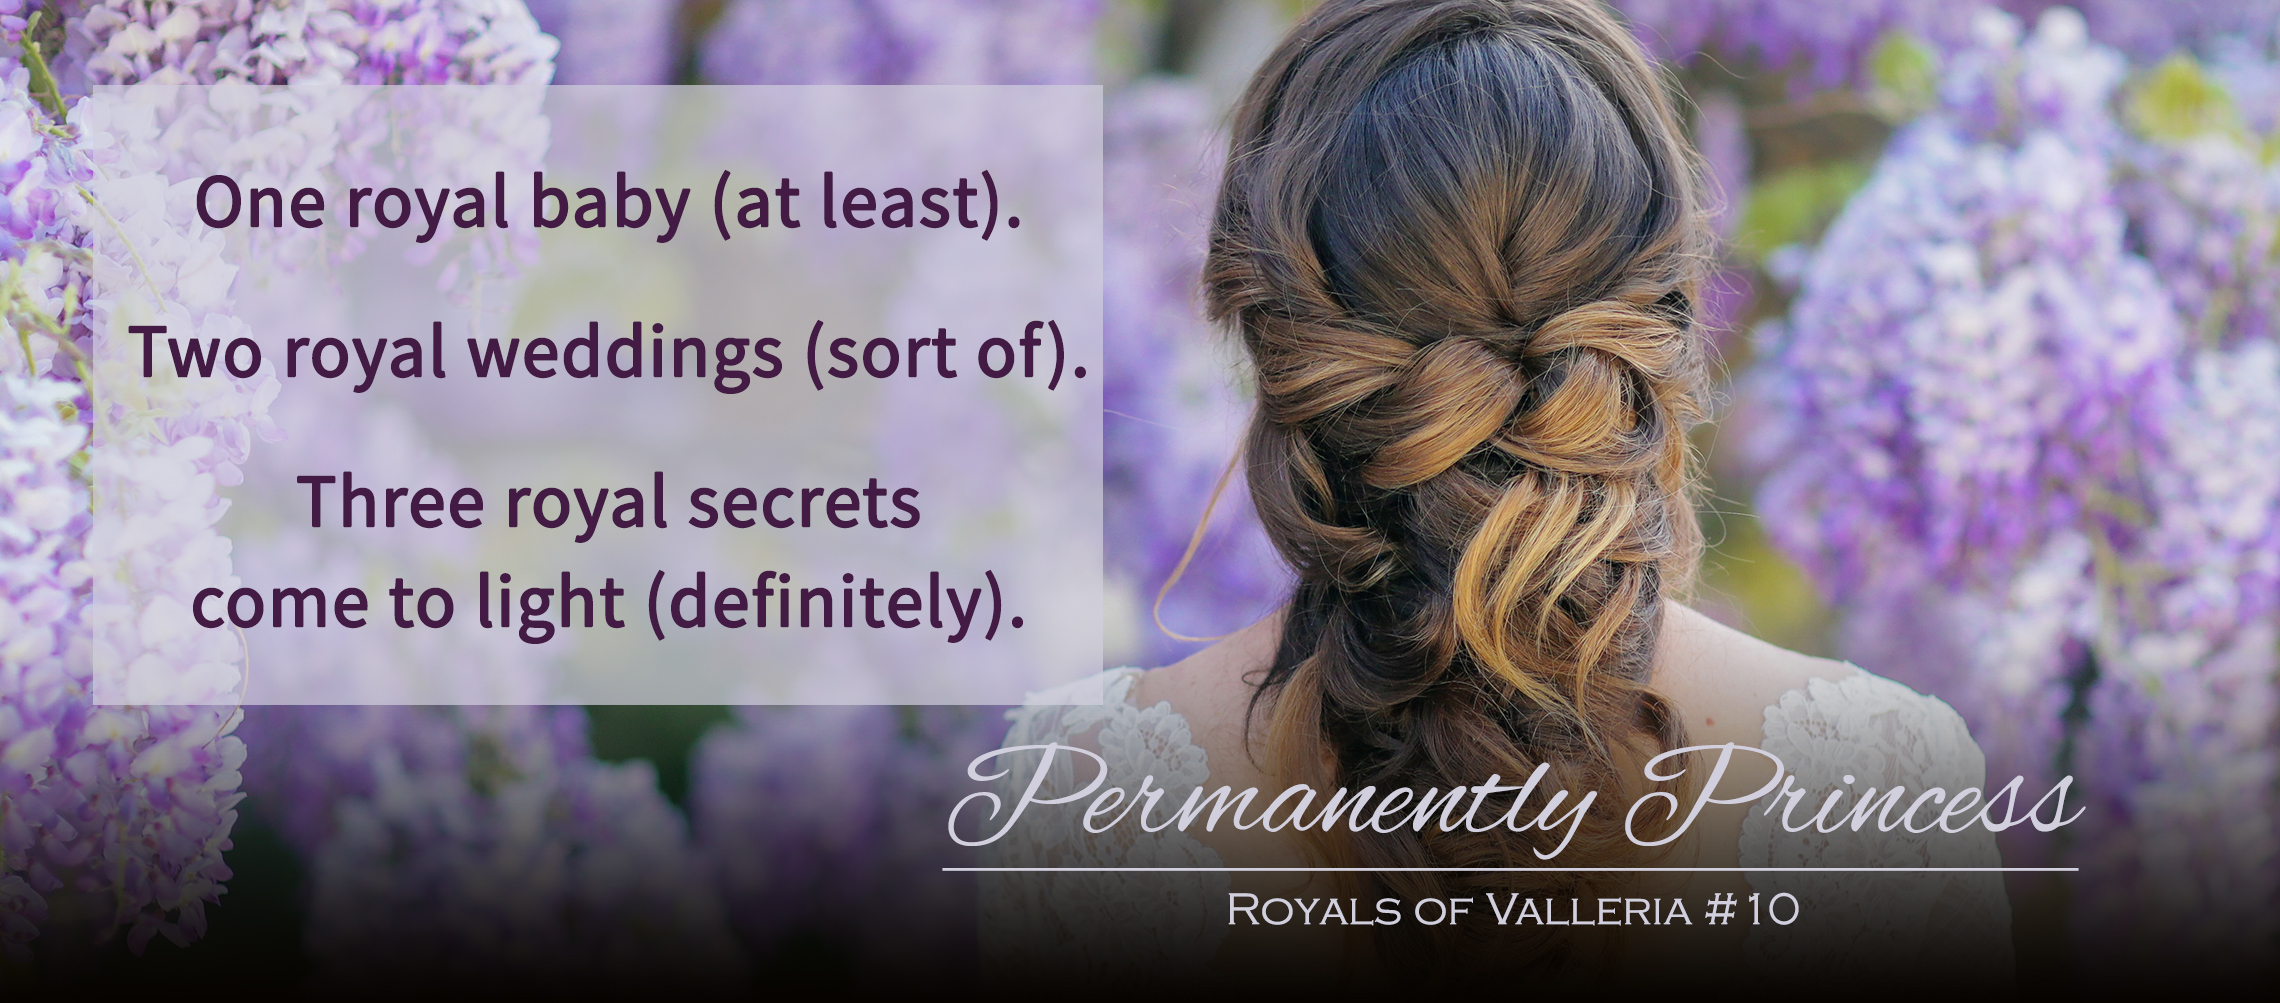 Permamently Princess (Royals of Valleria #10) by Marianne Knightly